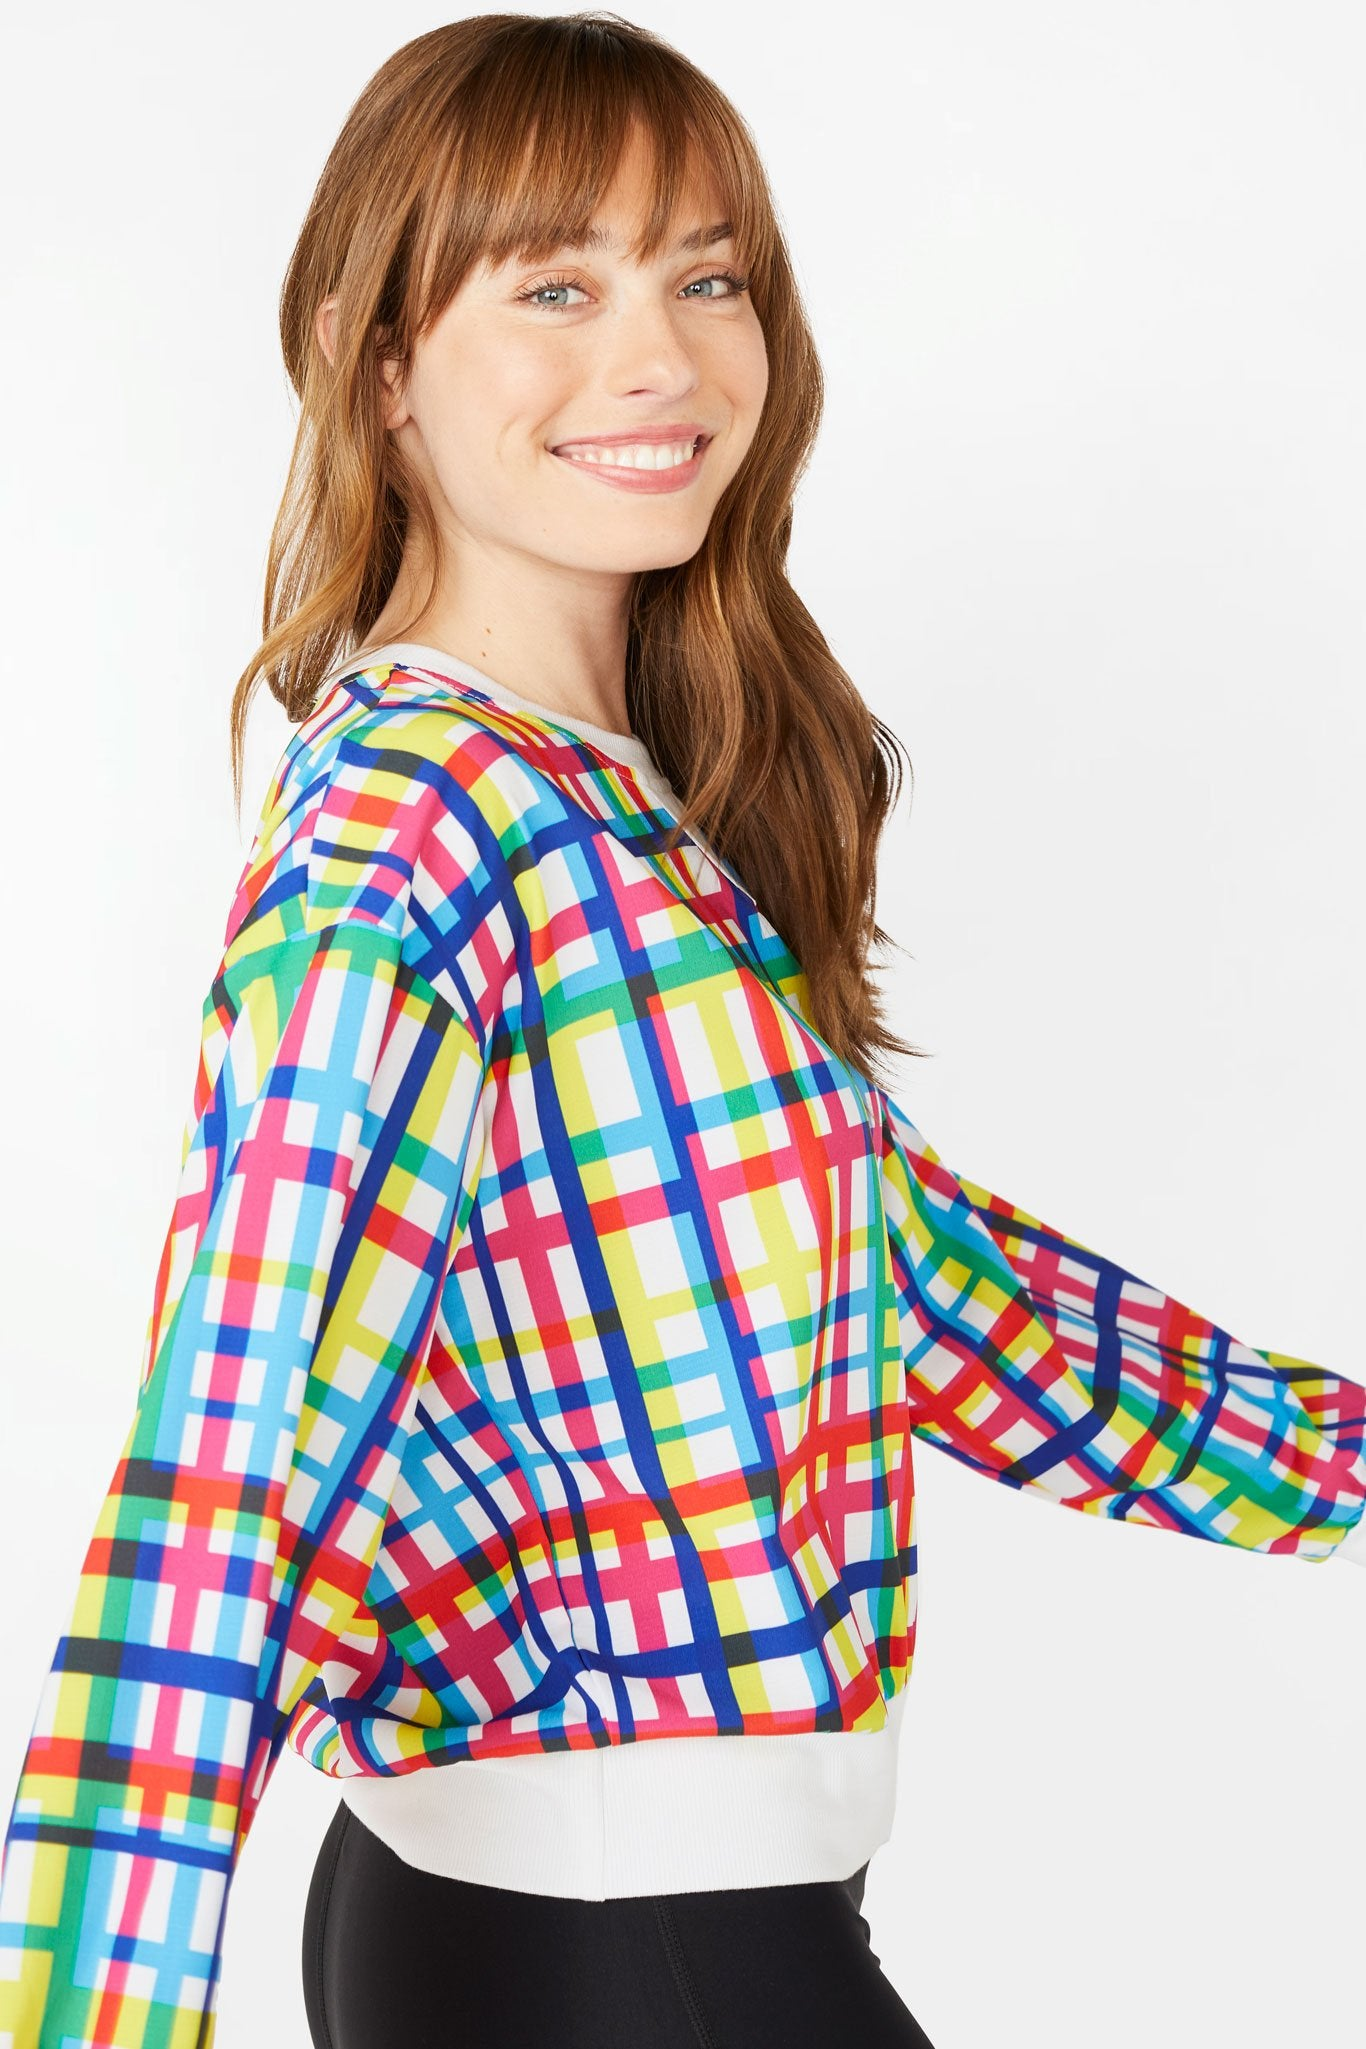 Technicolor Plaid RipStop Windbreaker Sweatshirt